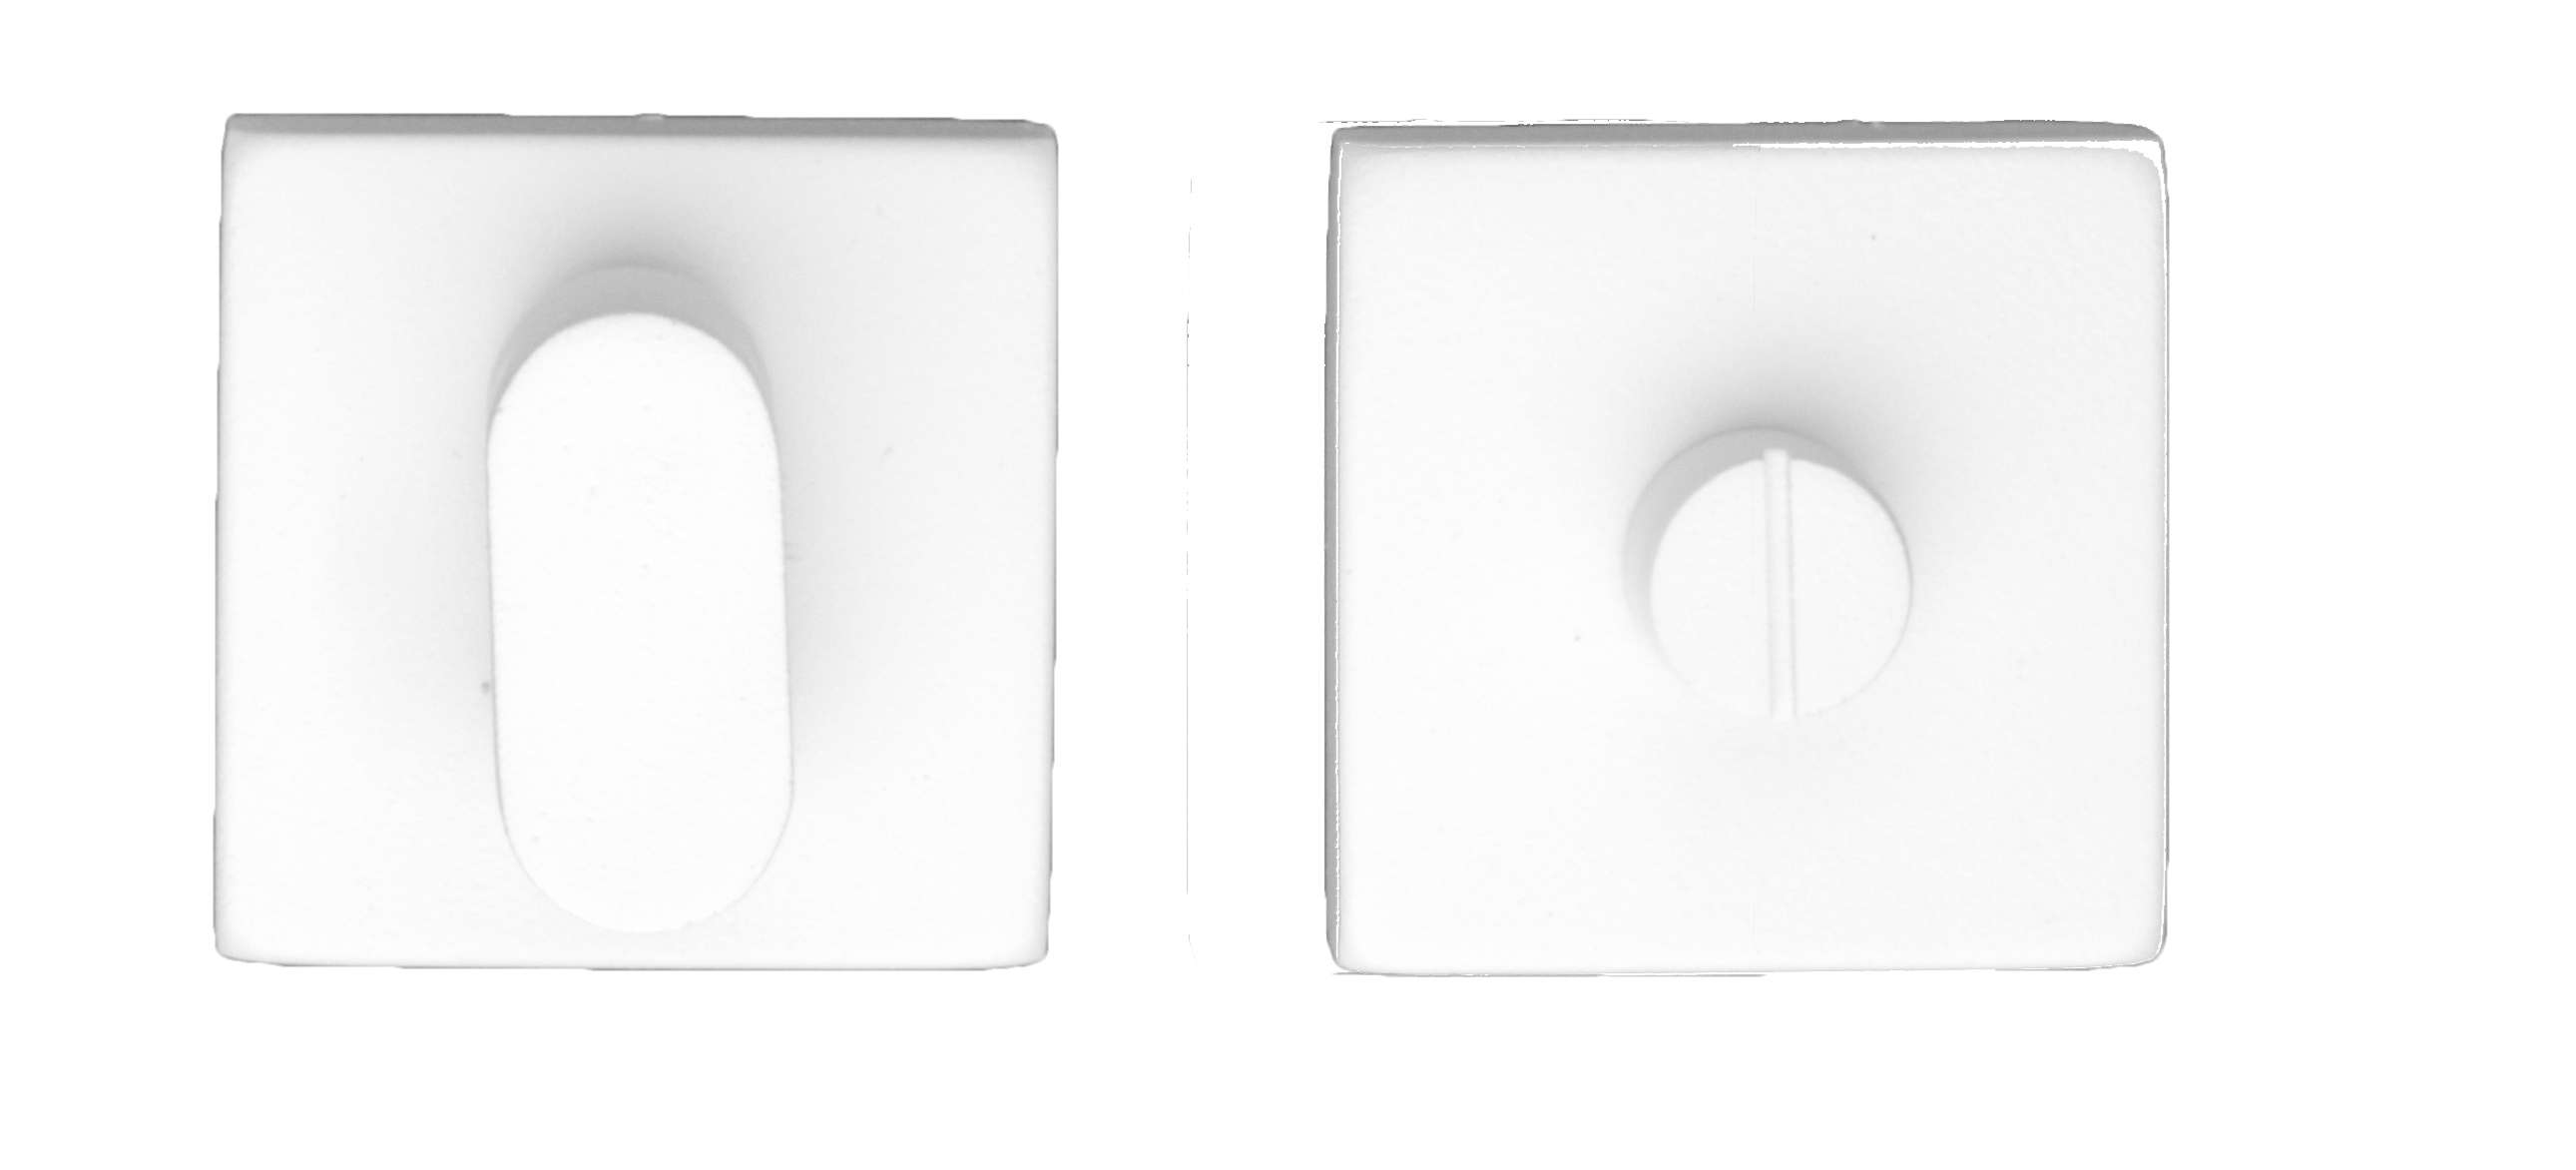 GARNITURE WC KUBIC SHAPE BLANC SANS ROUGE ET BLANC